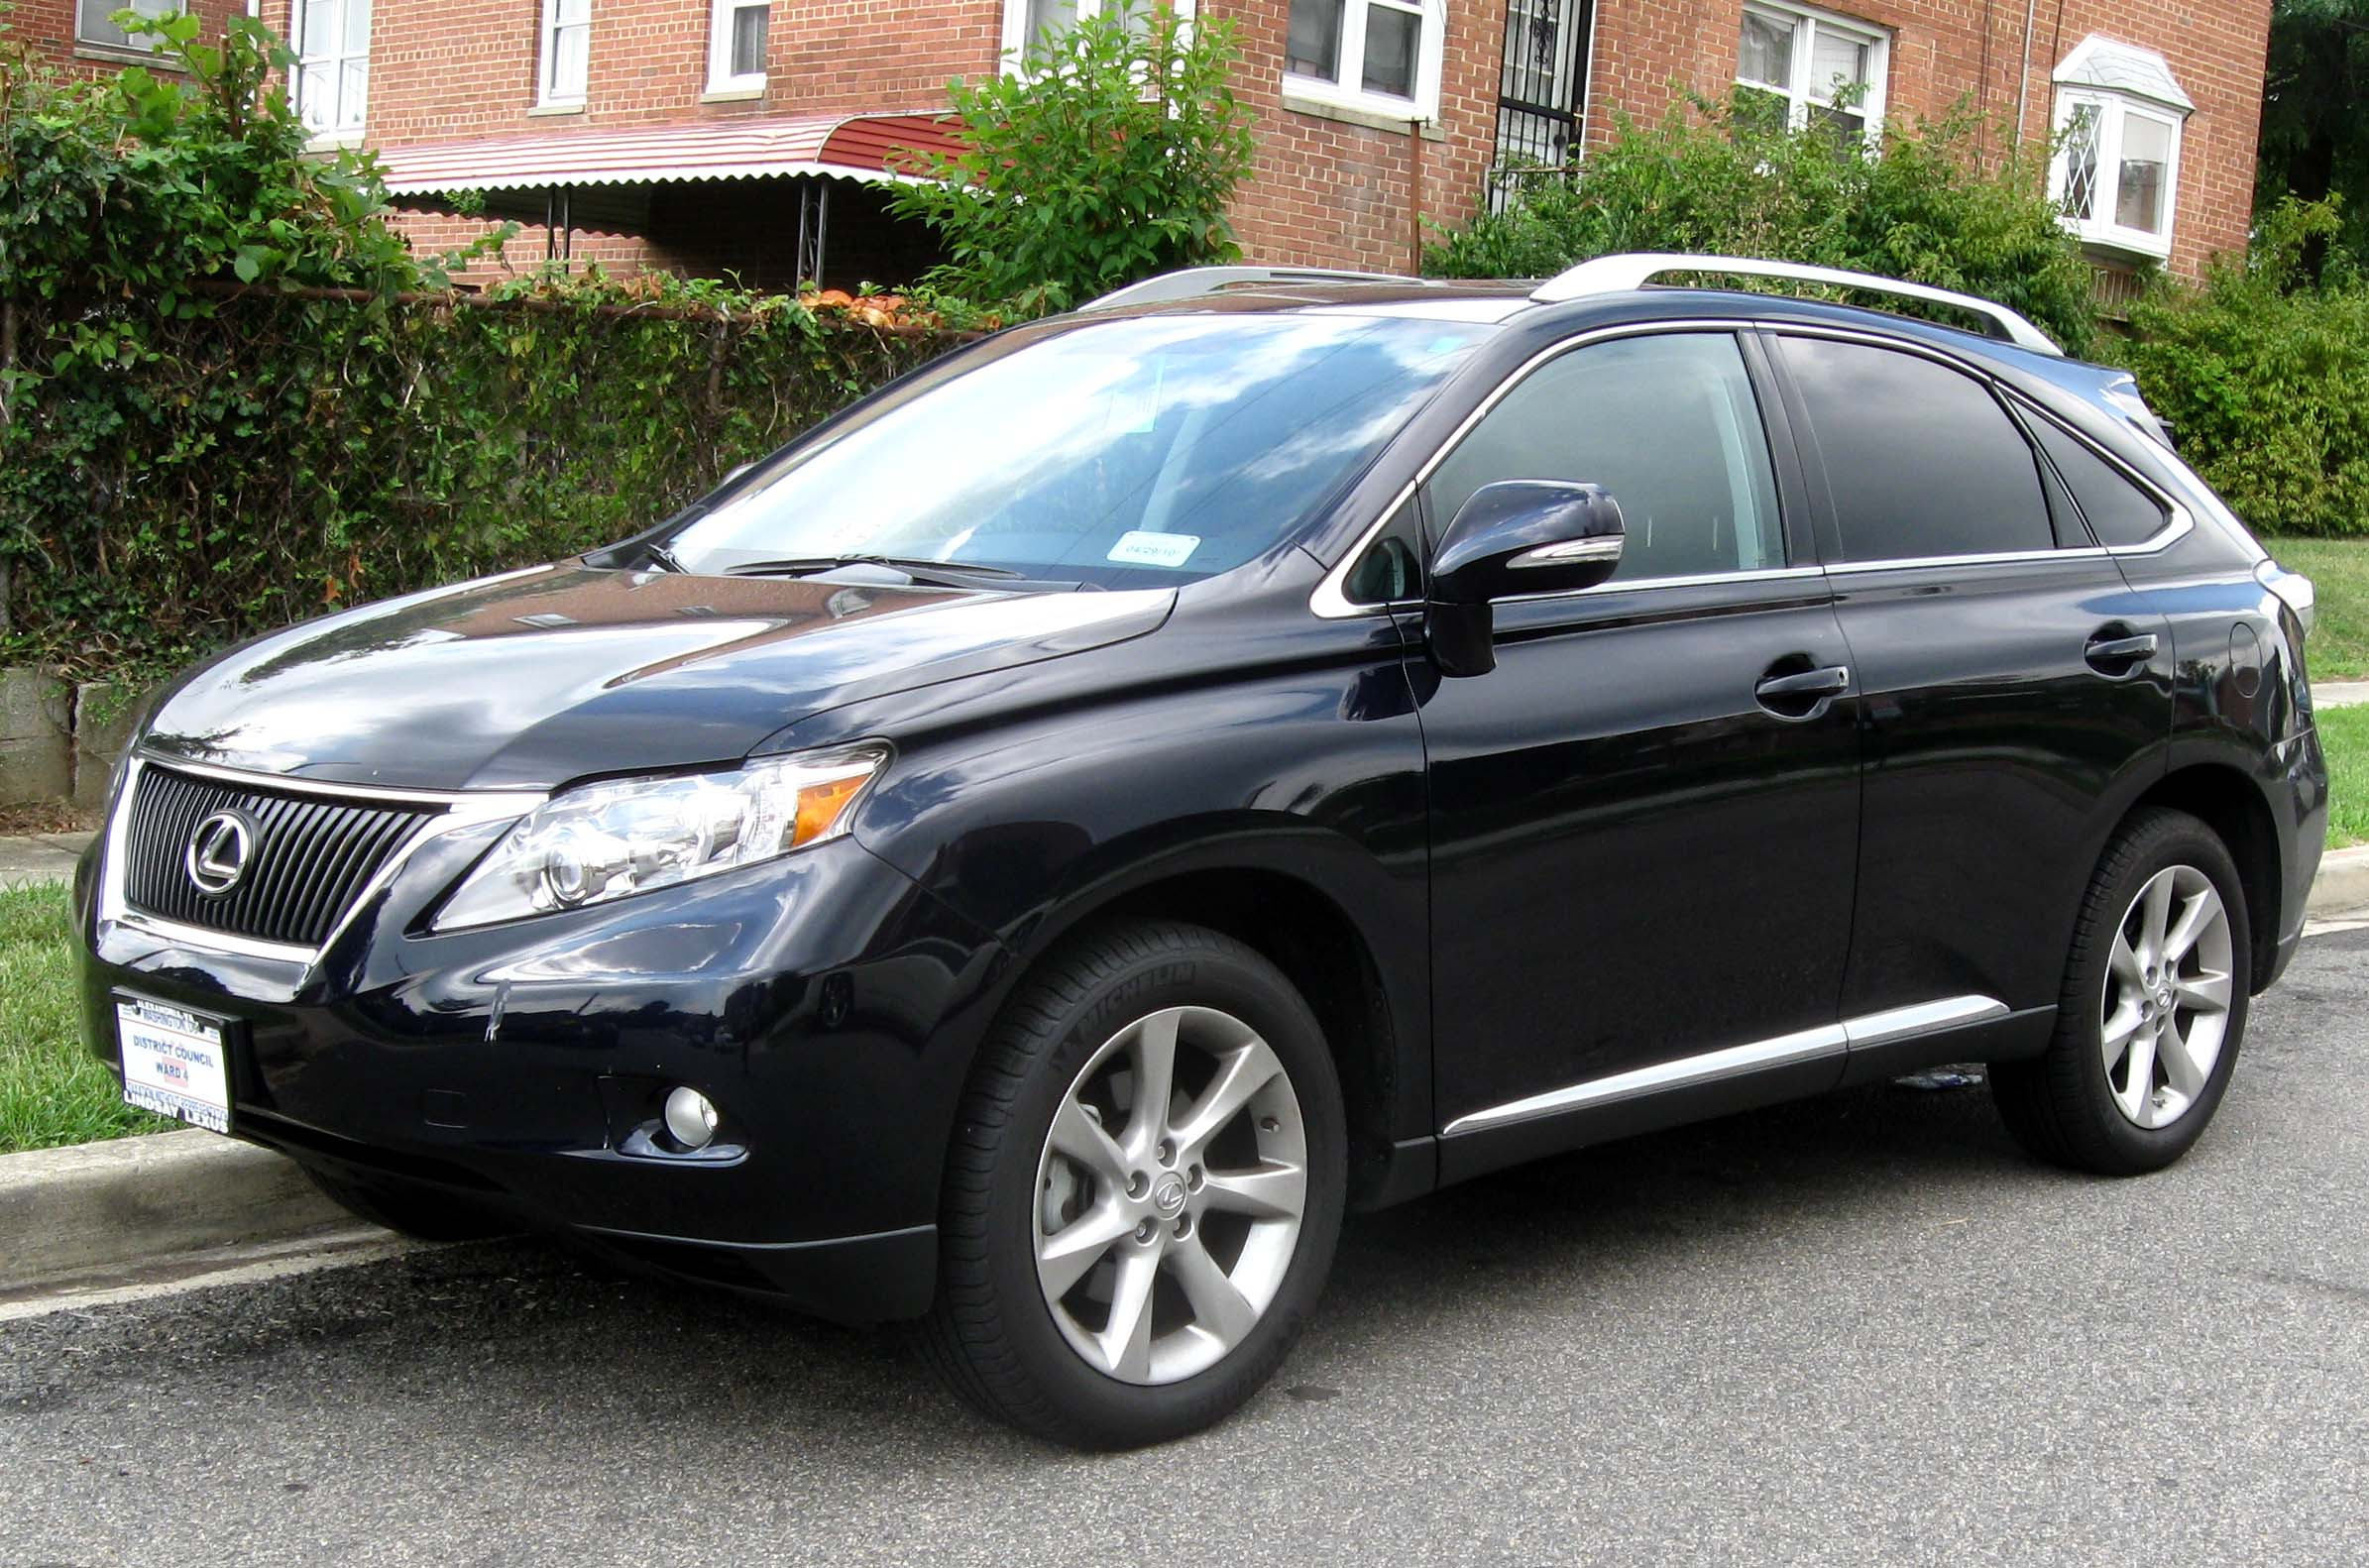 Rx 350 7 Seater >> File:2010 Lexus RX350 3 -- 08-14-2009.jpg - Wikimedia Commons